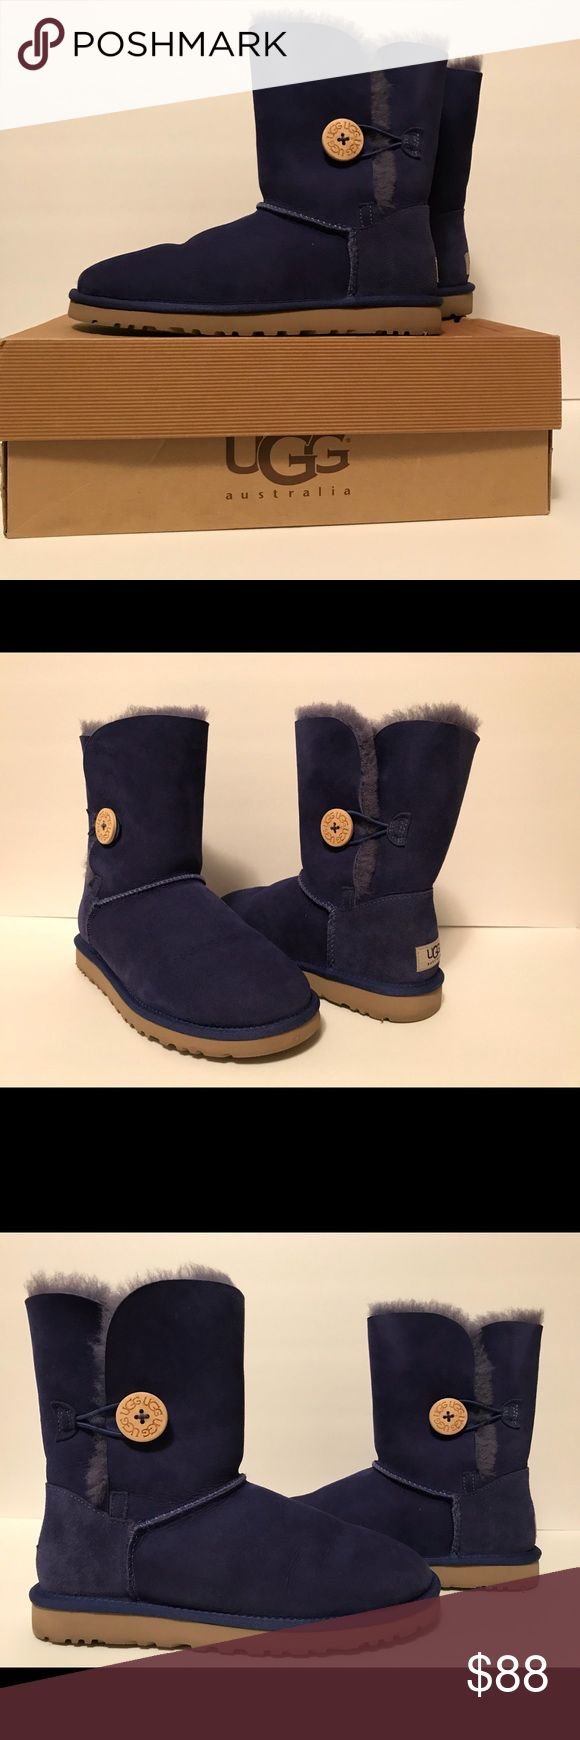 Ugg Boots Size 7 with Bailey Button - Royal Blue Ugg Boots Size 7 with Bailey Button - Royal Blue. Used once. Originally purchased at Nordstrom UGG Shoes Winter & Rain Boots